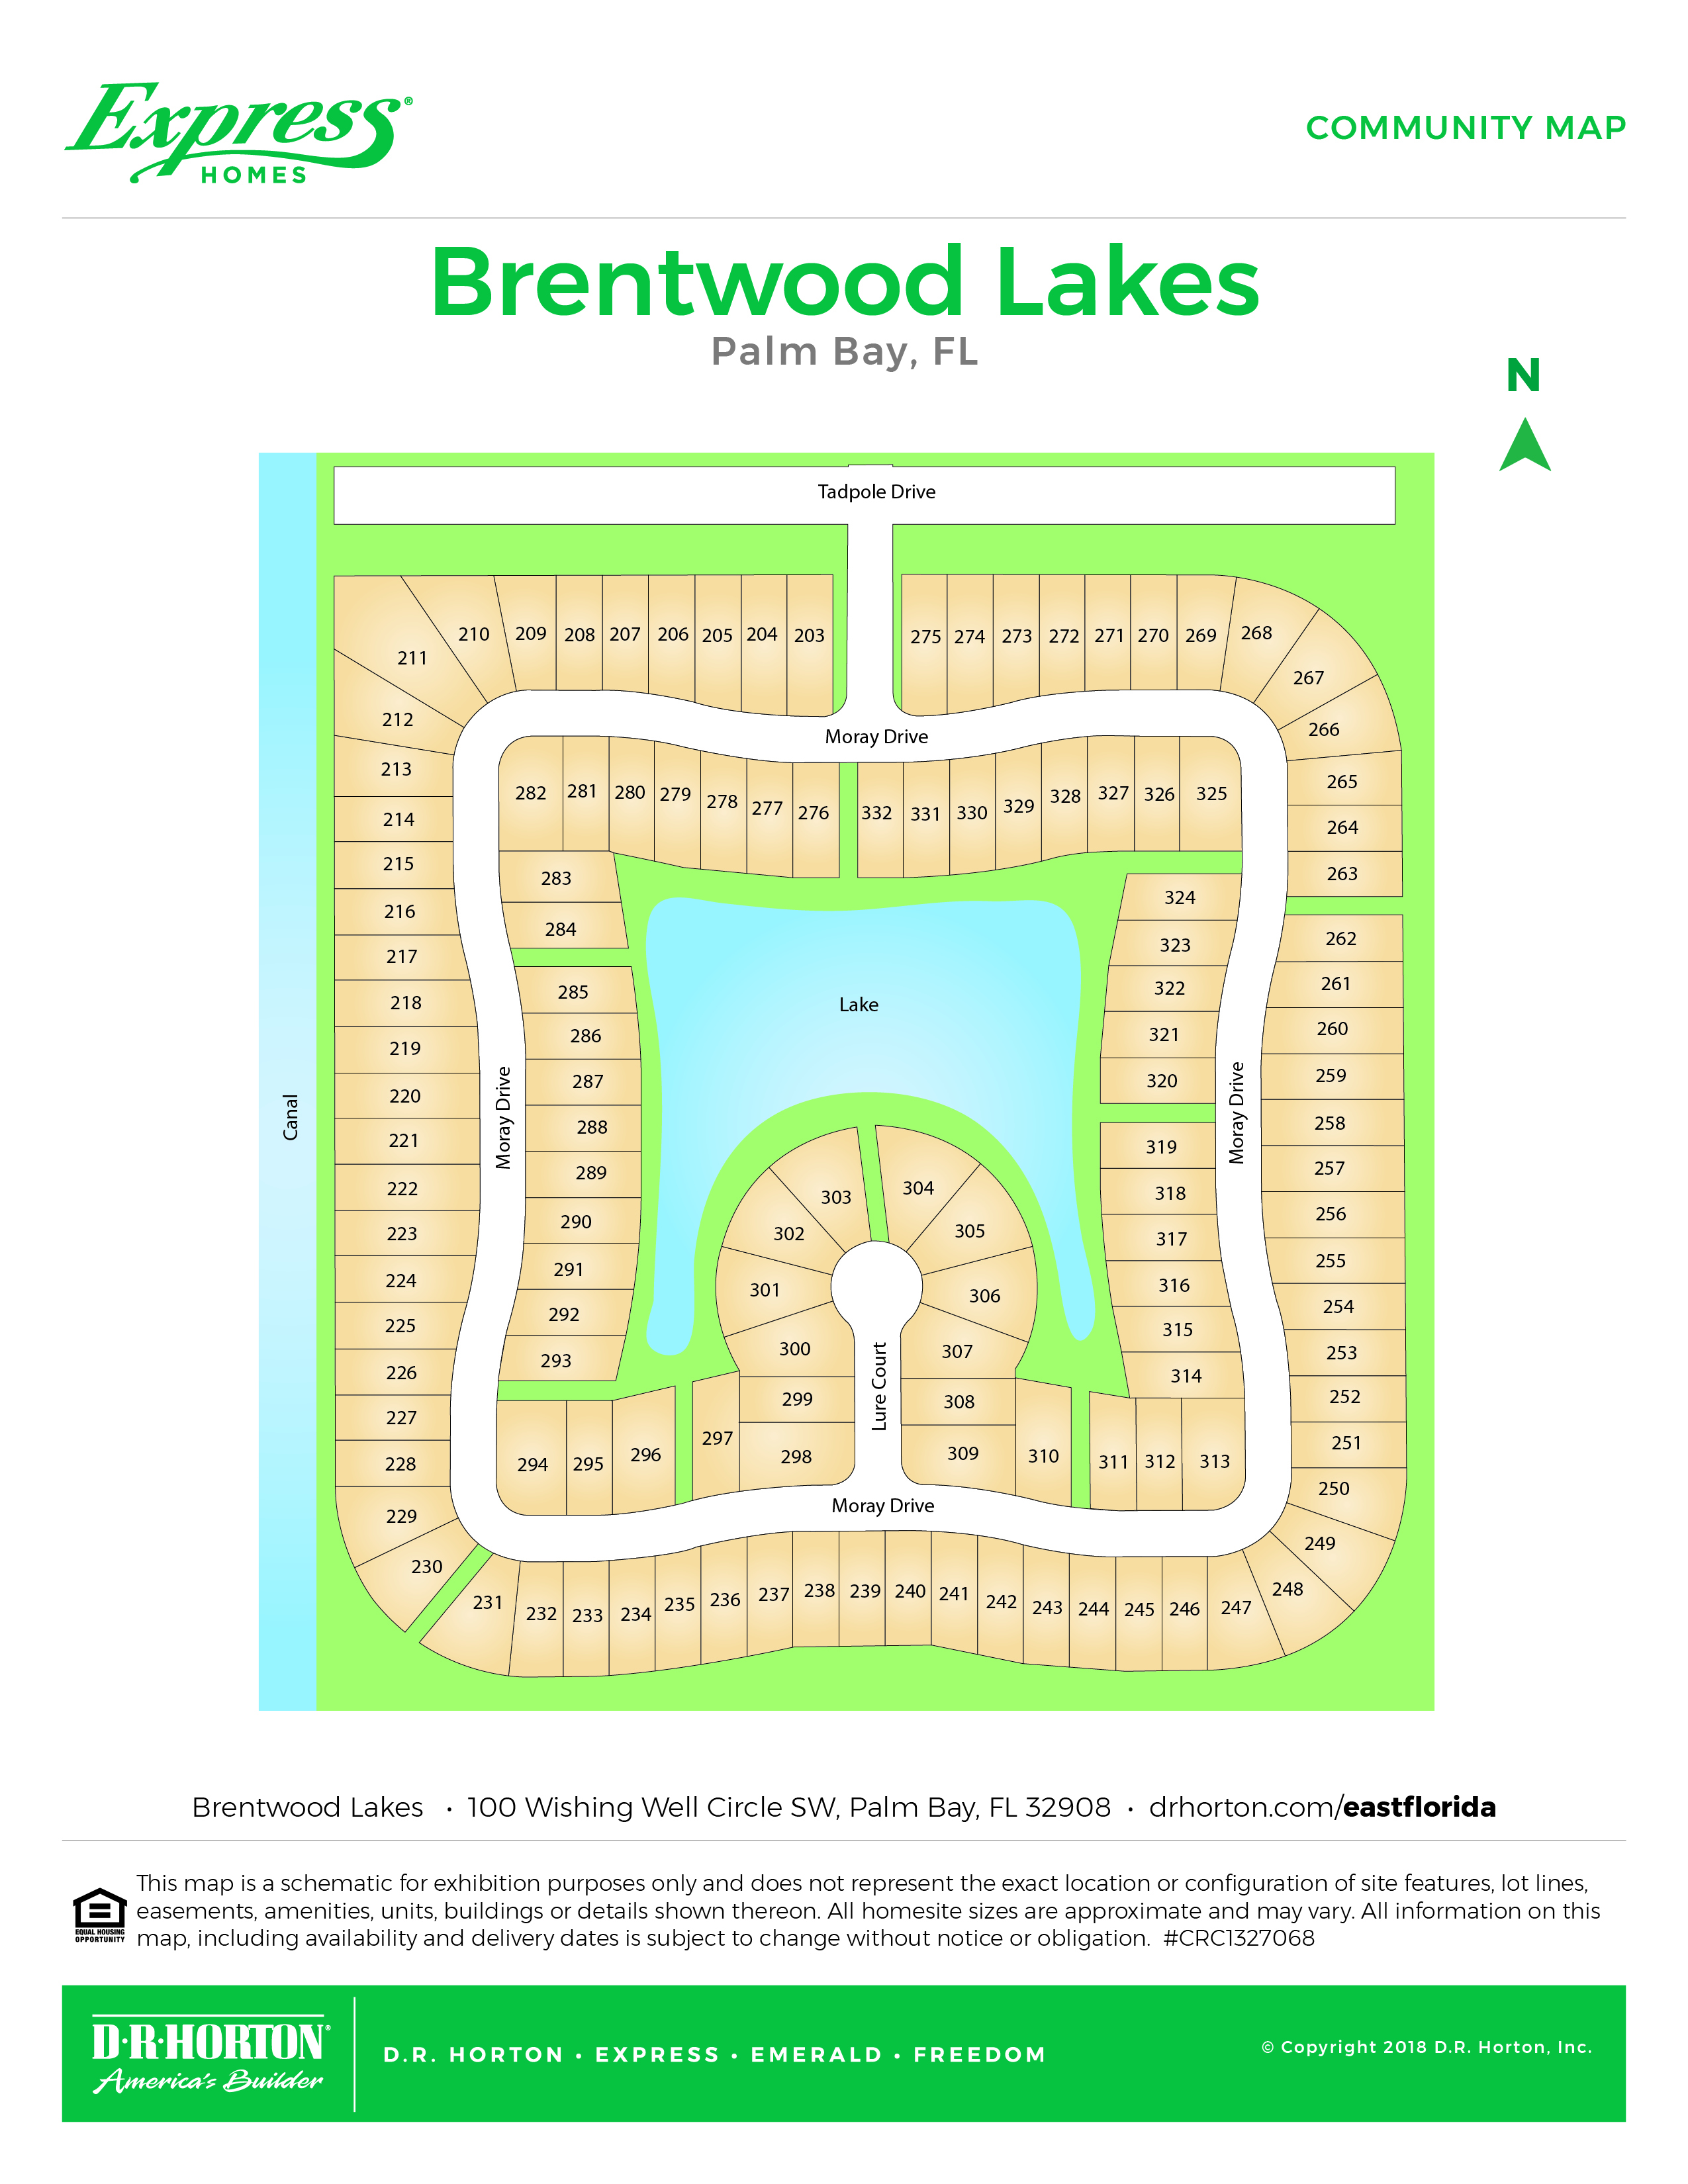 Palm Bay Florida Zip Code Map.New Homes In Brentwood Lakes Palm Bay Florida Express Homes